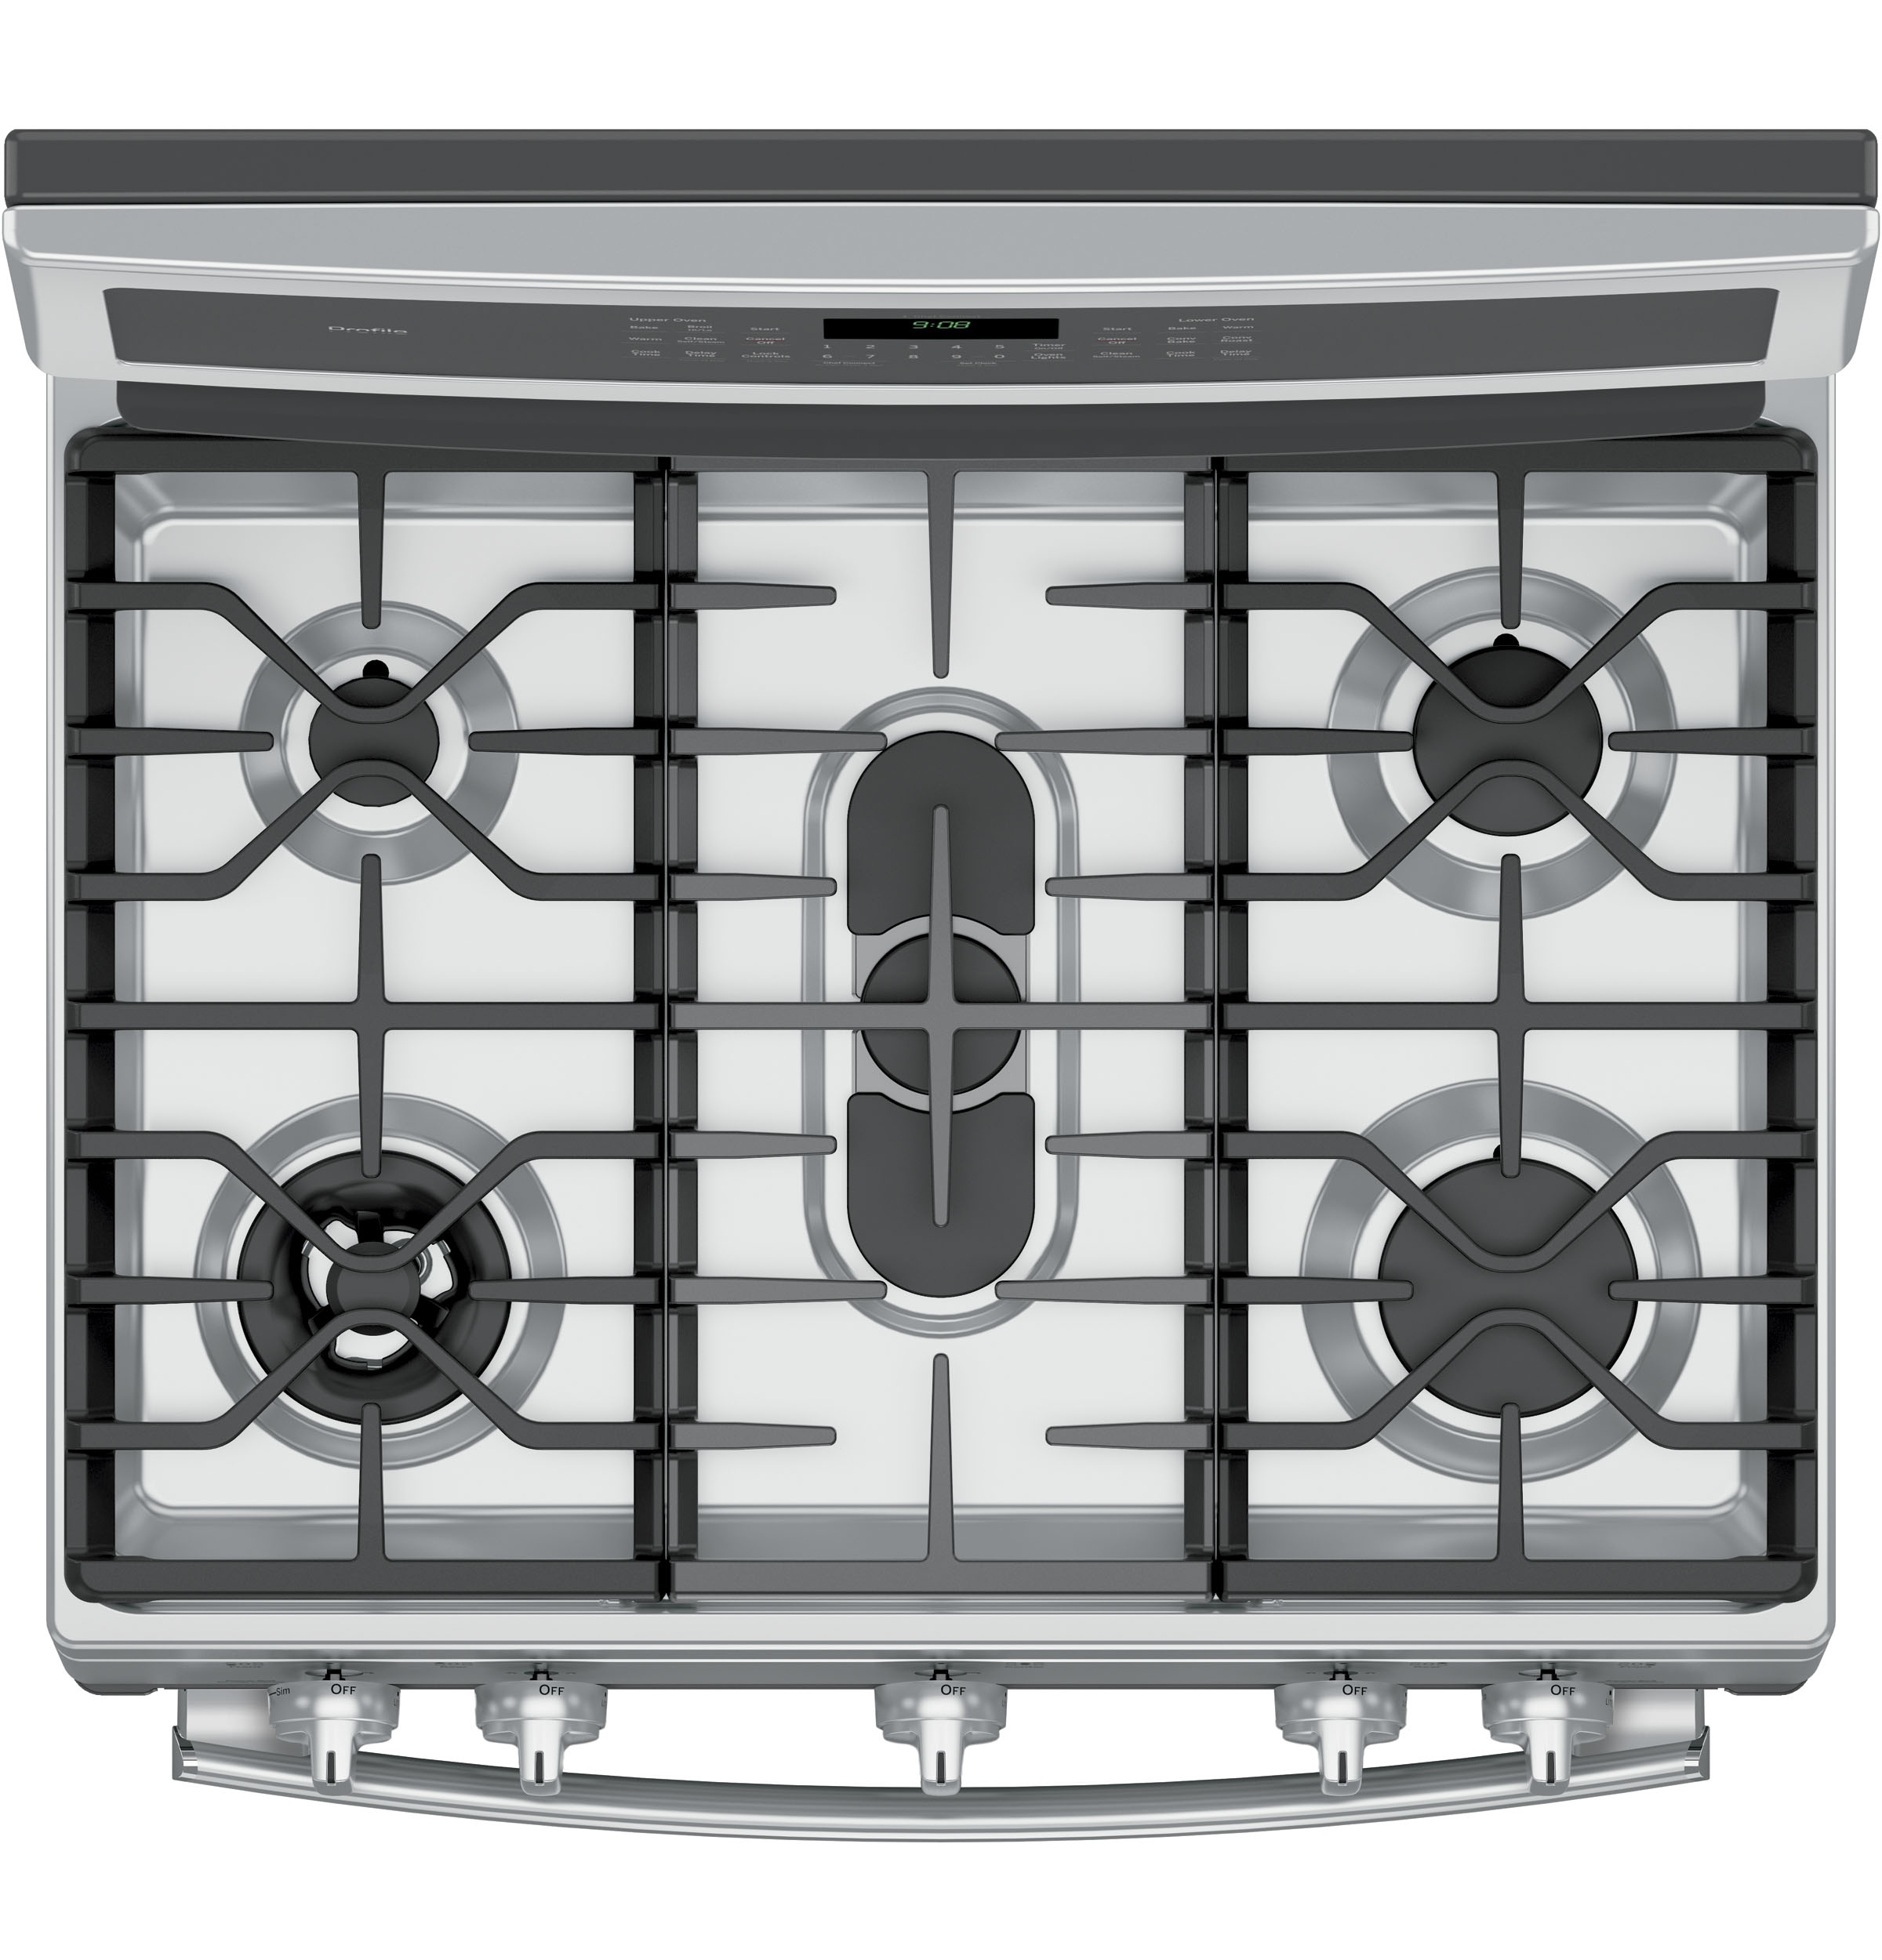 GE Profile PGB980ZEJSS 6.8 cu. ft. Freestanding Gas Range w/ Double Convection Oven - Stainless Steel